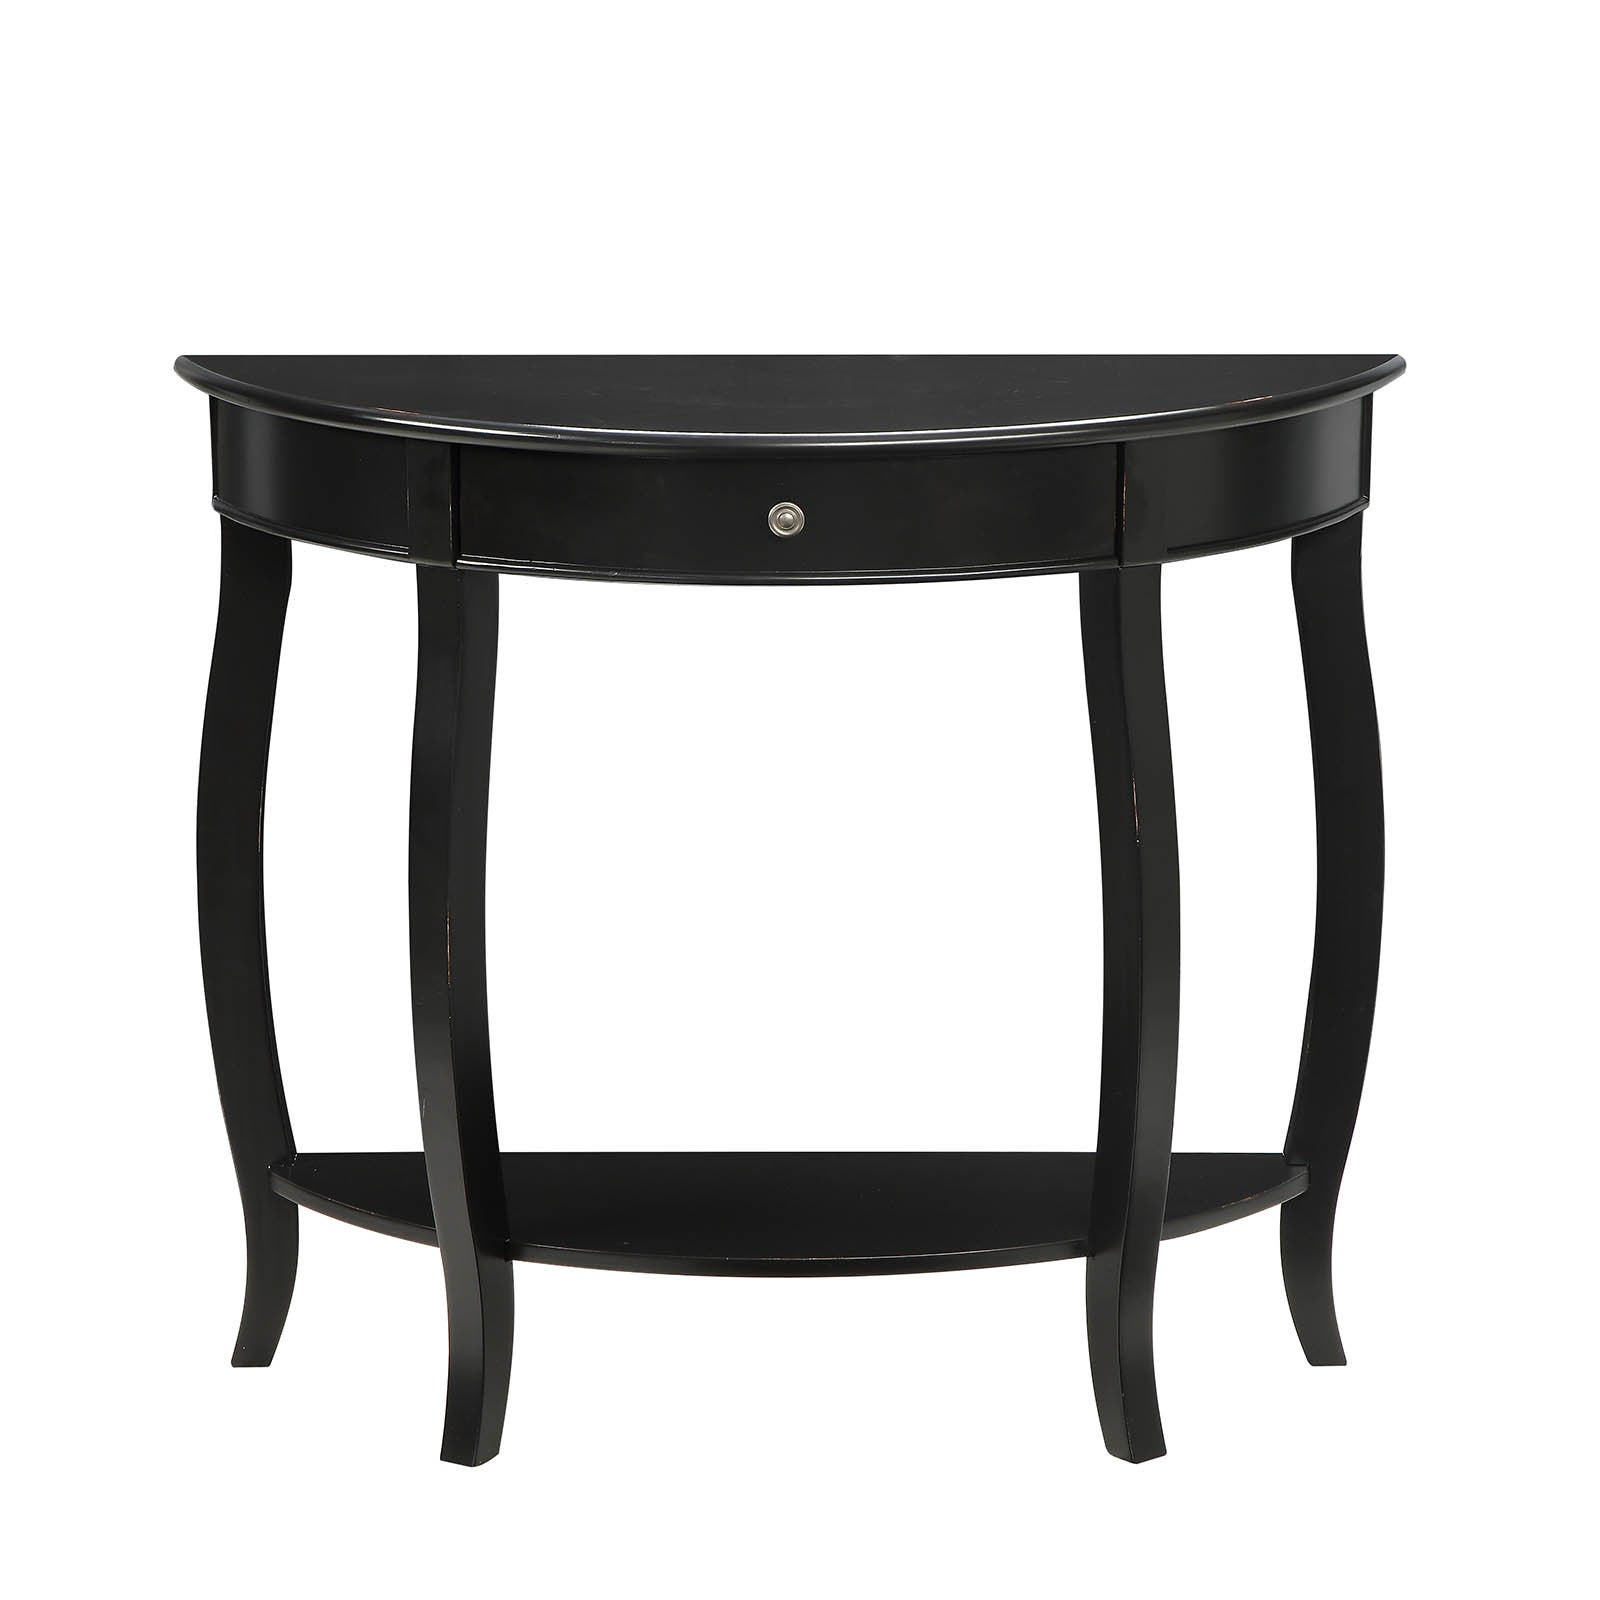 Delicieux Shop Yvonne Half Moon Console Table With Drawer In Antique Black   Free  Shipping Today   Overstock.com   16381682